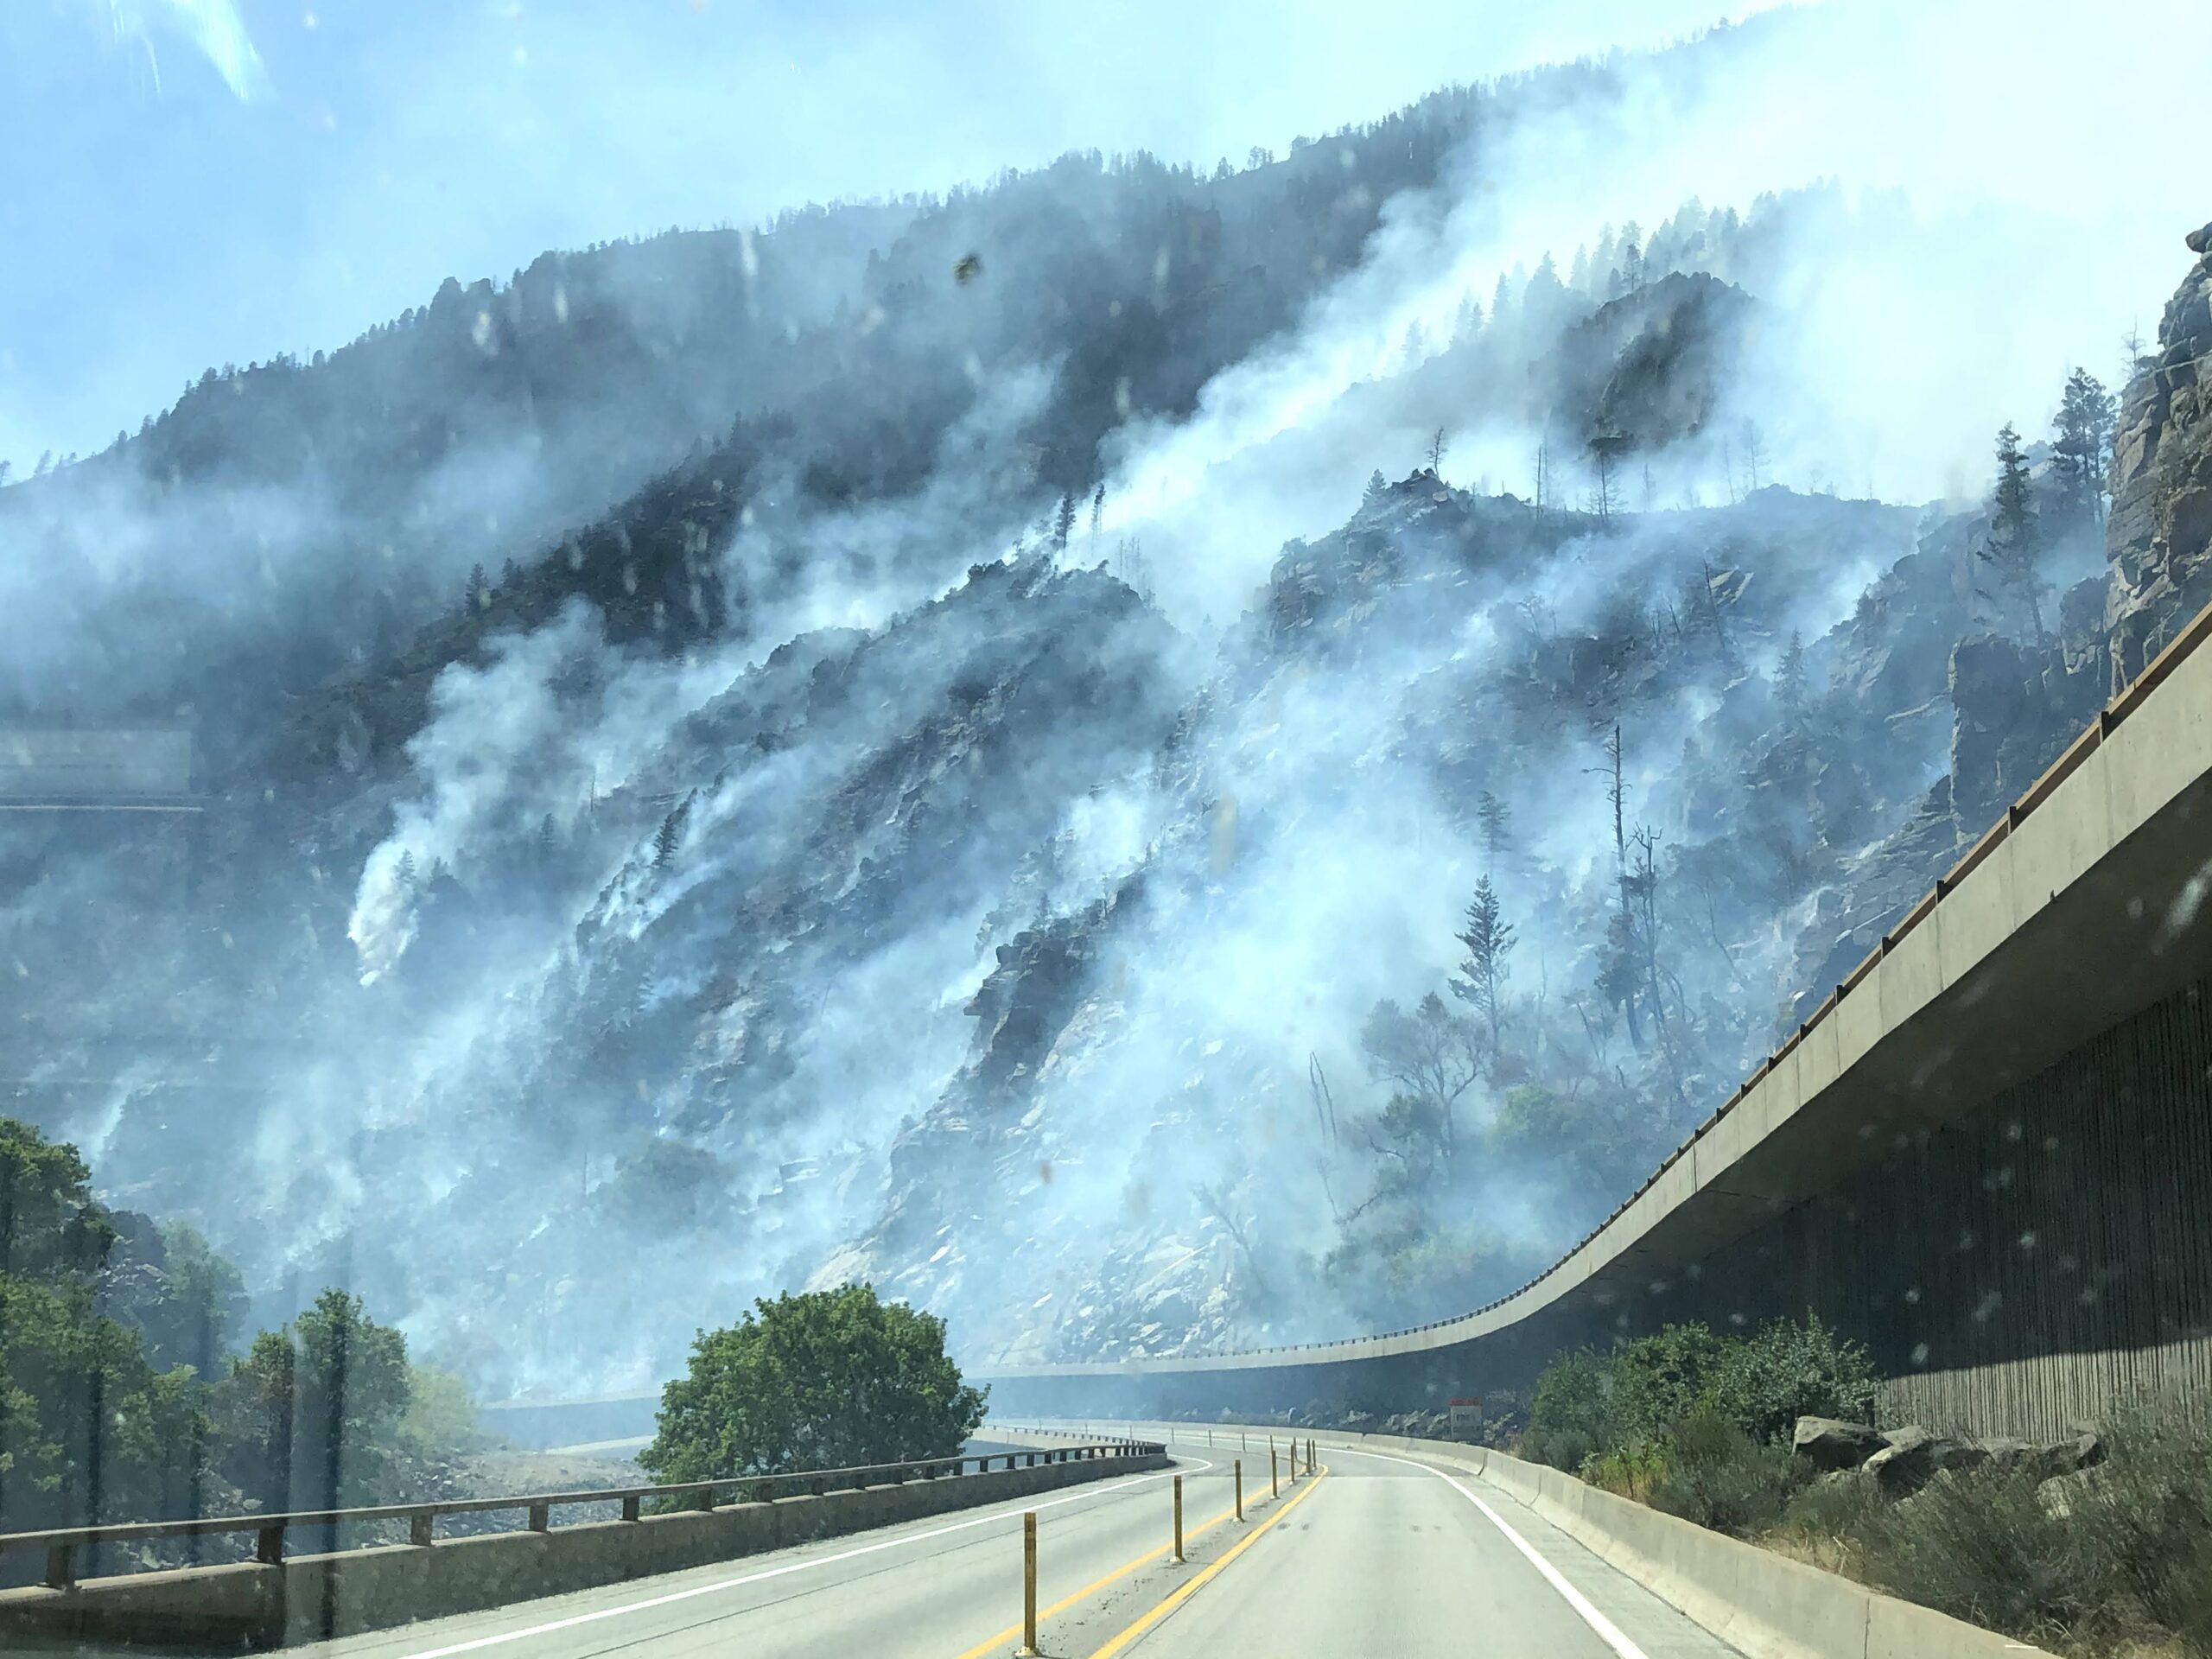 Smoke rises from the walls of Glenwood Canyon, where the Grizzly Creek fire has kept I-70 closed for days.